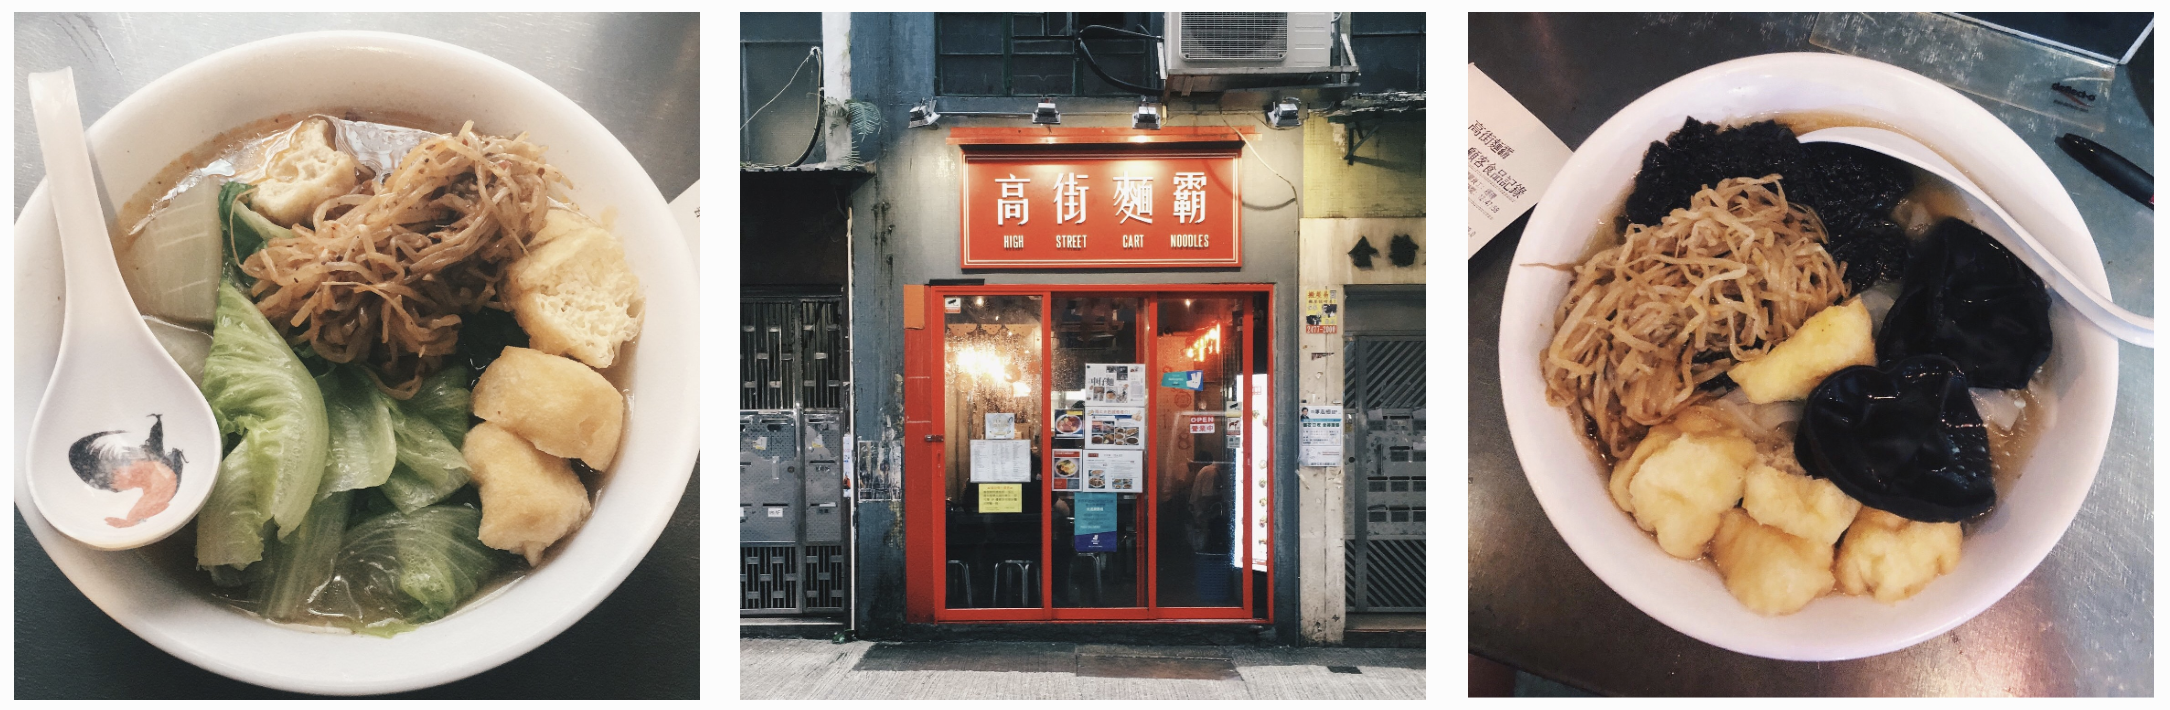 高街麵霸HIGH STREET CART NOODLEs -